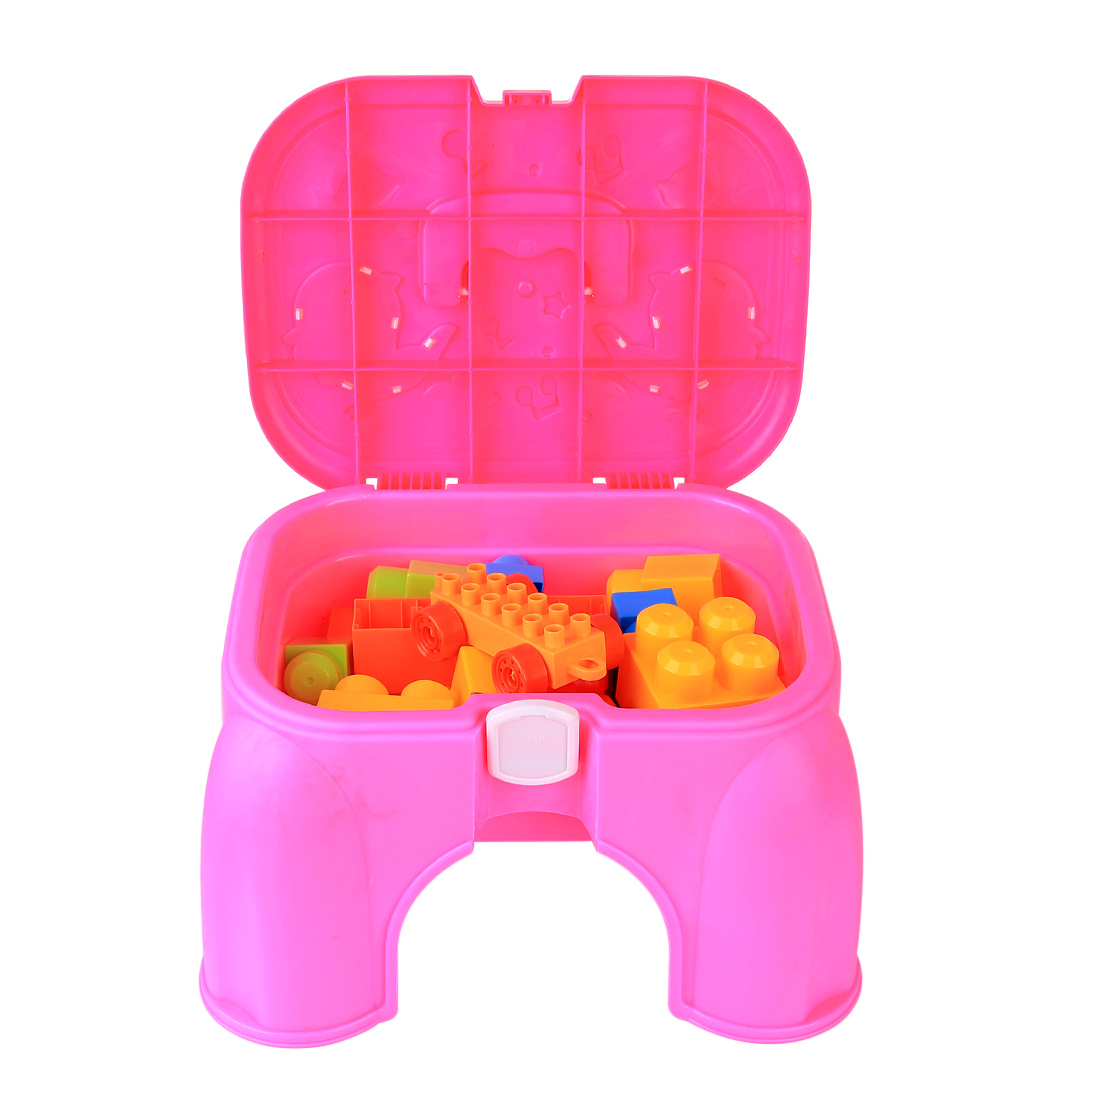 2019 New 20Pcs/set Outdoor Summer Beach Sand Toys Storage Chair Learning Educational Playset for Kids - (Parts Random Color)